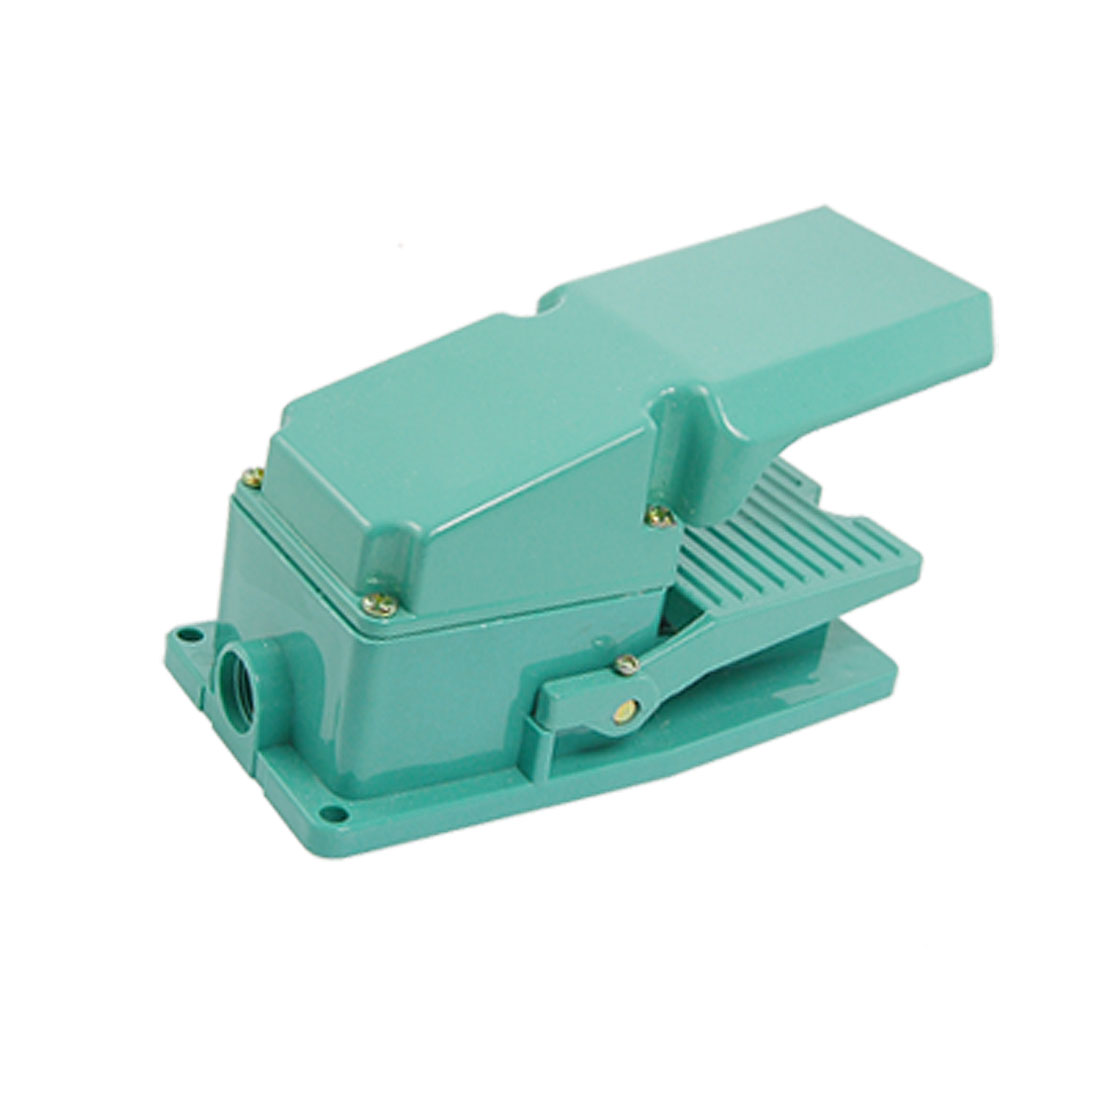 AC 250V 15A Antislip Metal Momentary Industrial Treadle Foot Pedal Switch Green